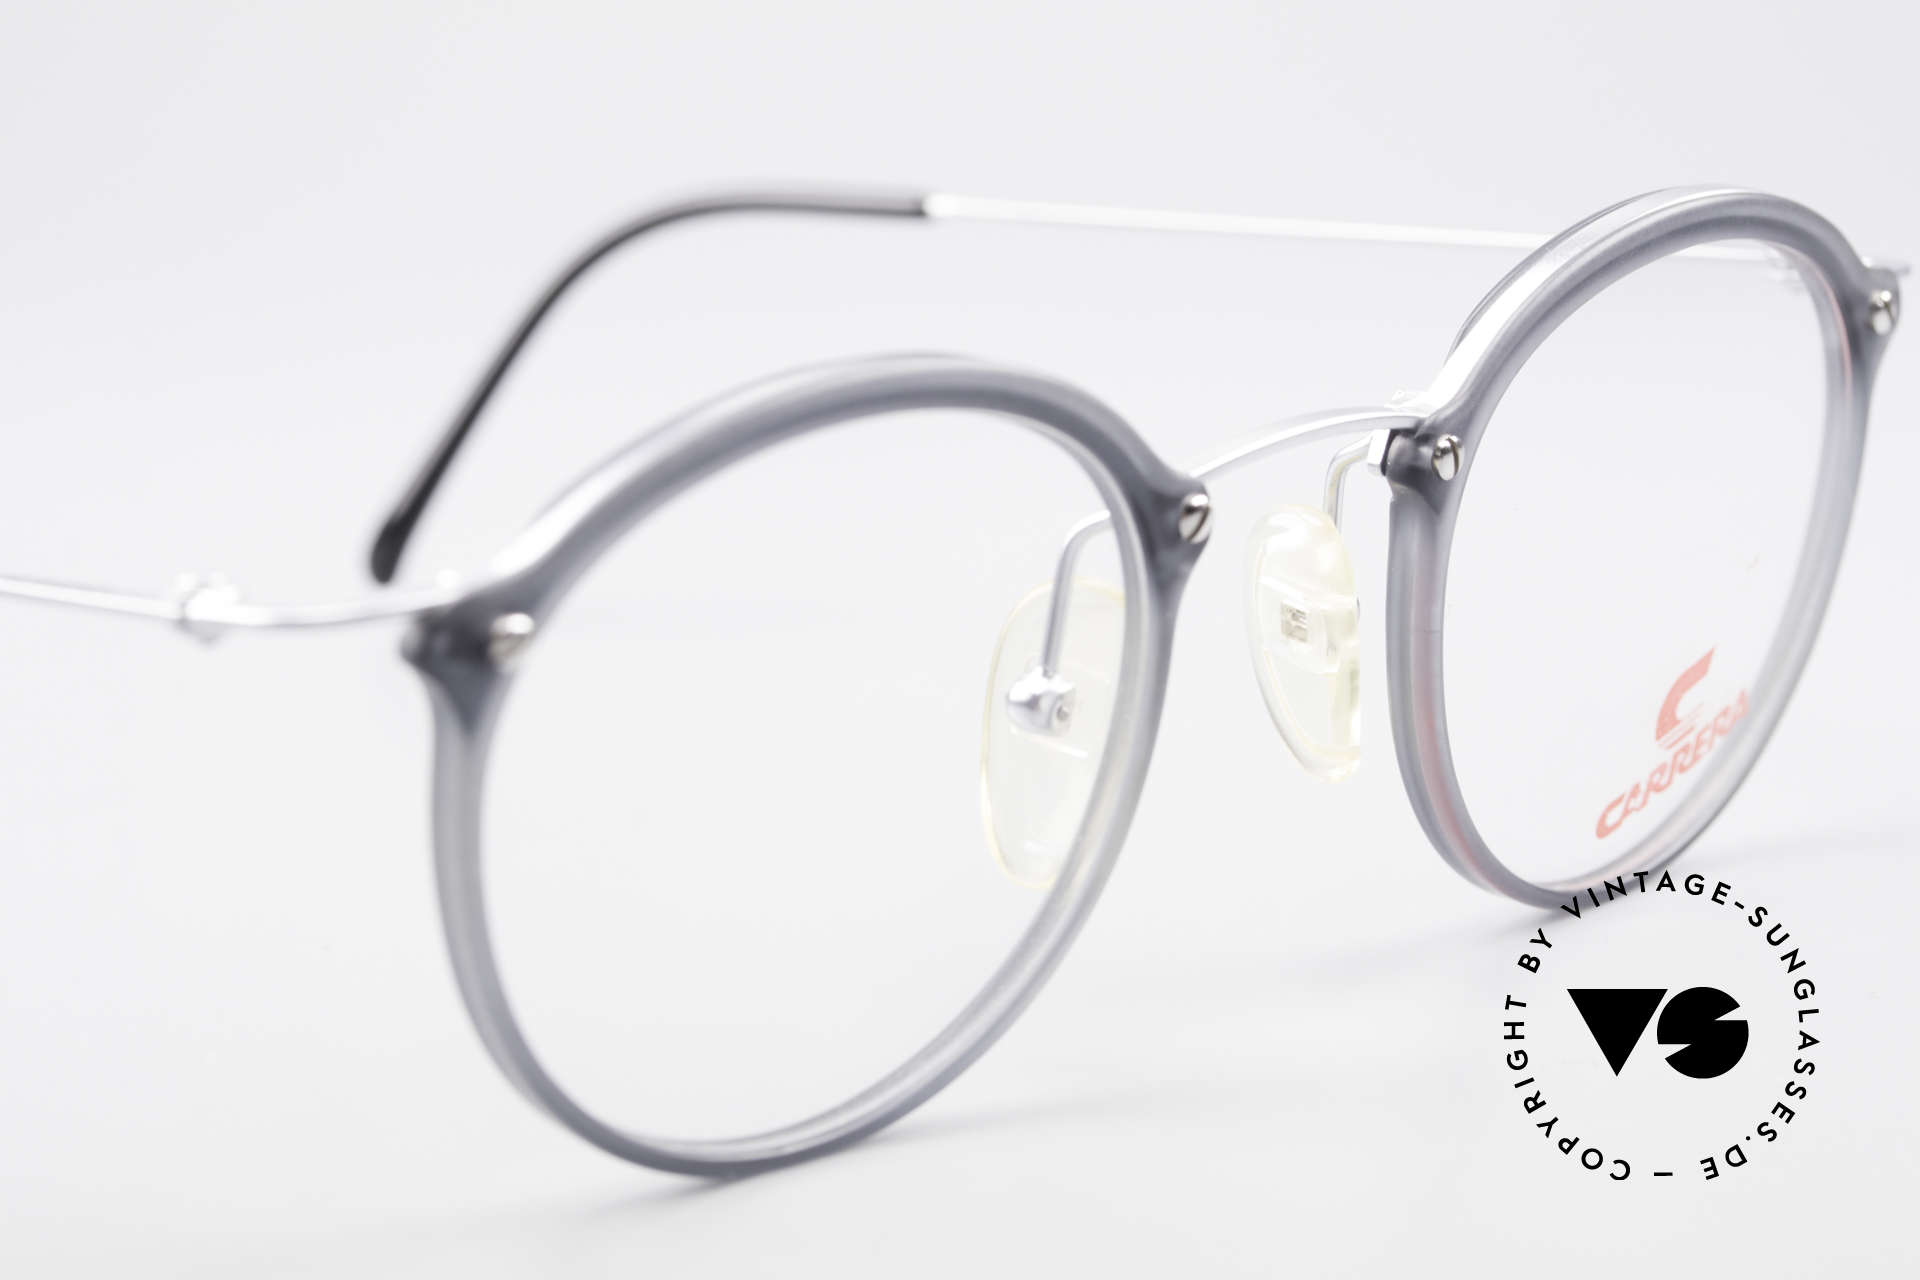 Carrera 4942 Round Panto Vintage Glasses, NO RETRO EYEWEAR; but a 20 years old ORIGINAL!, Made for Men and Women